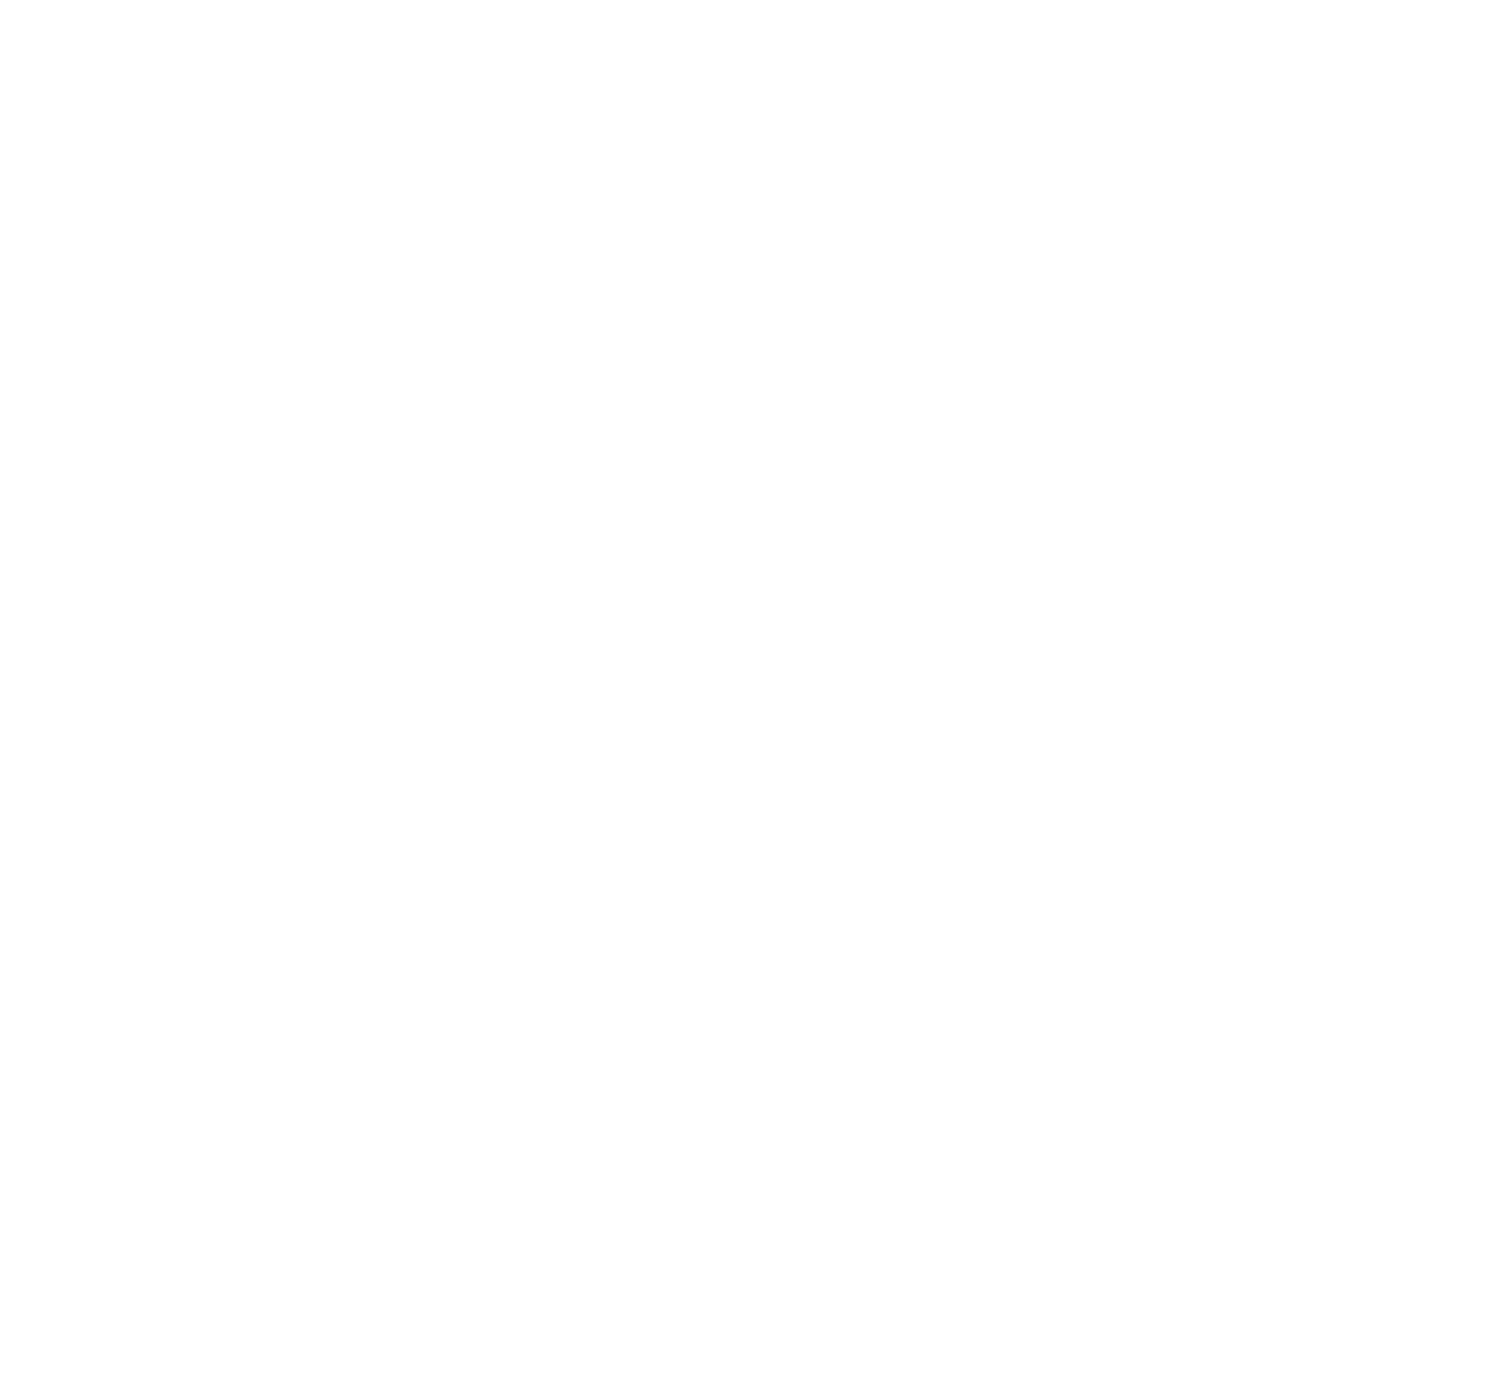 1623 Brewing Company